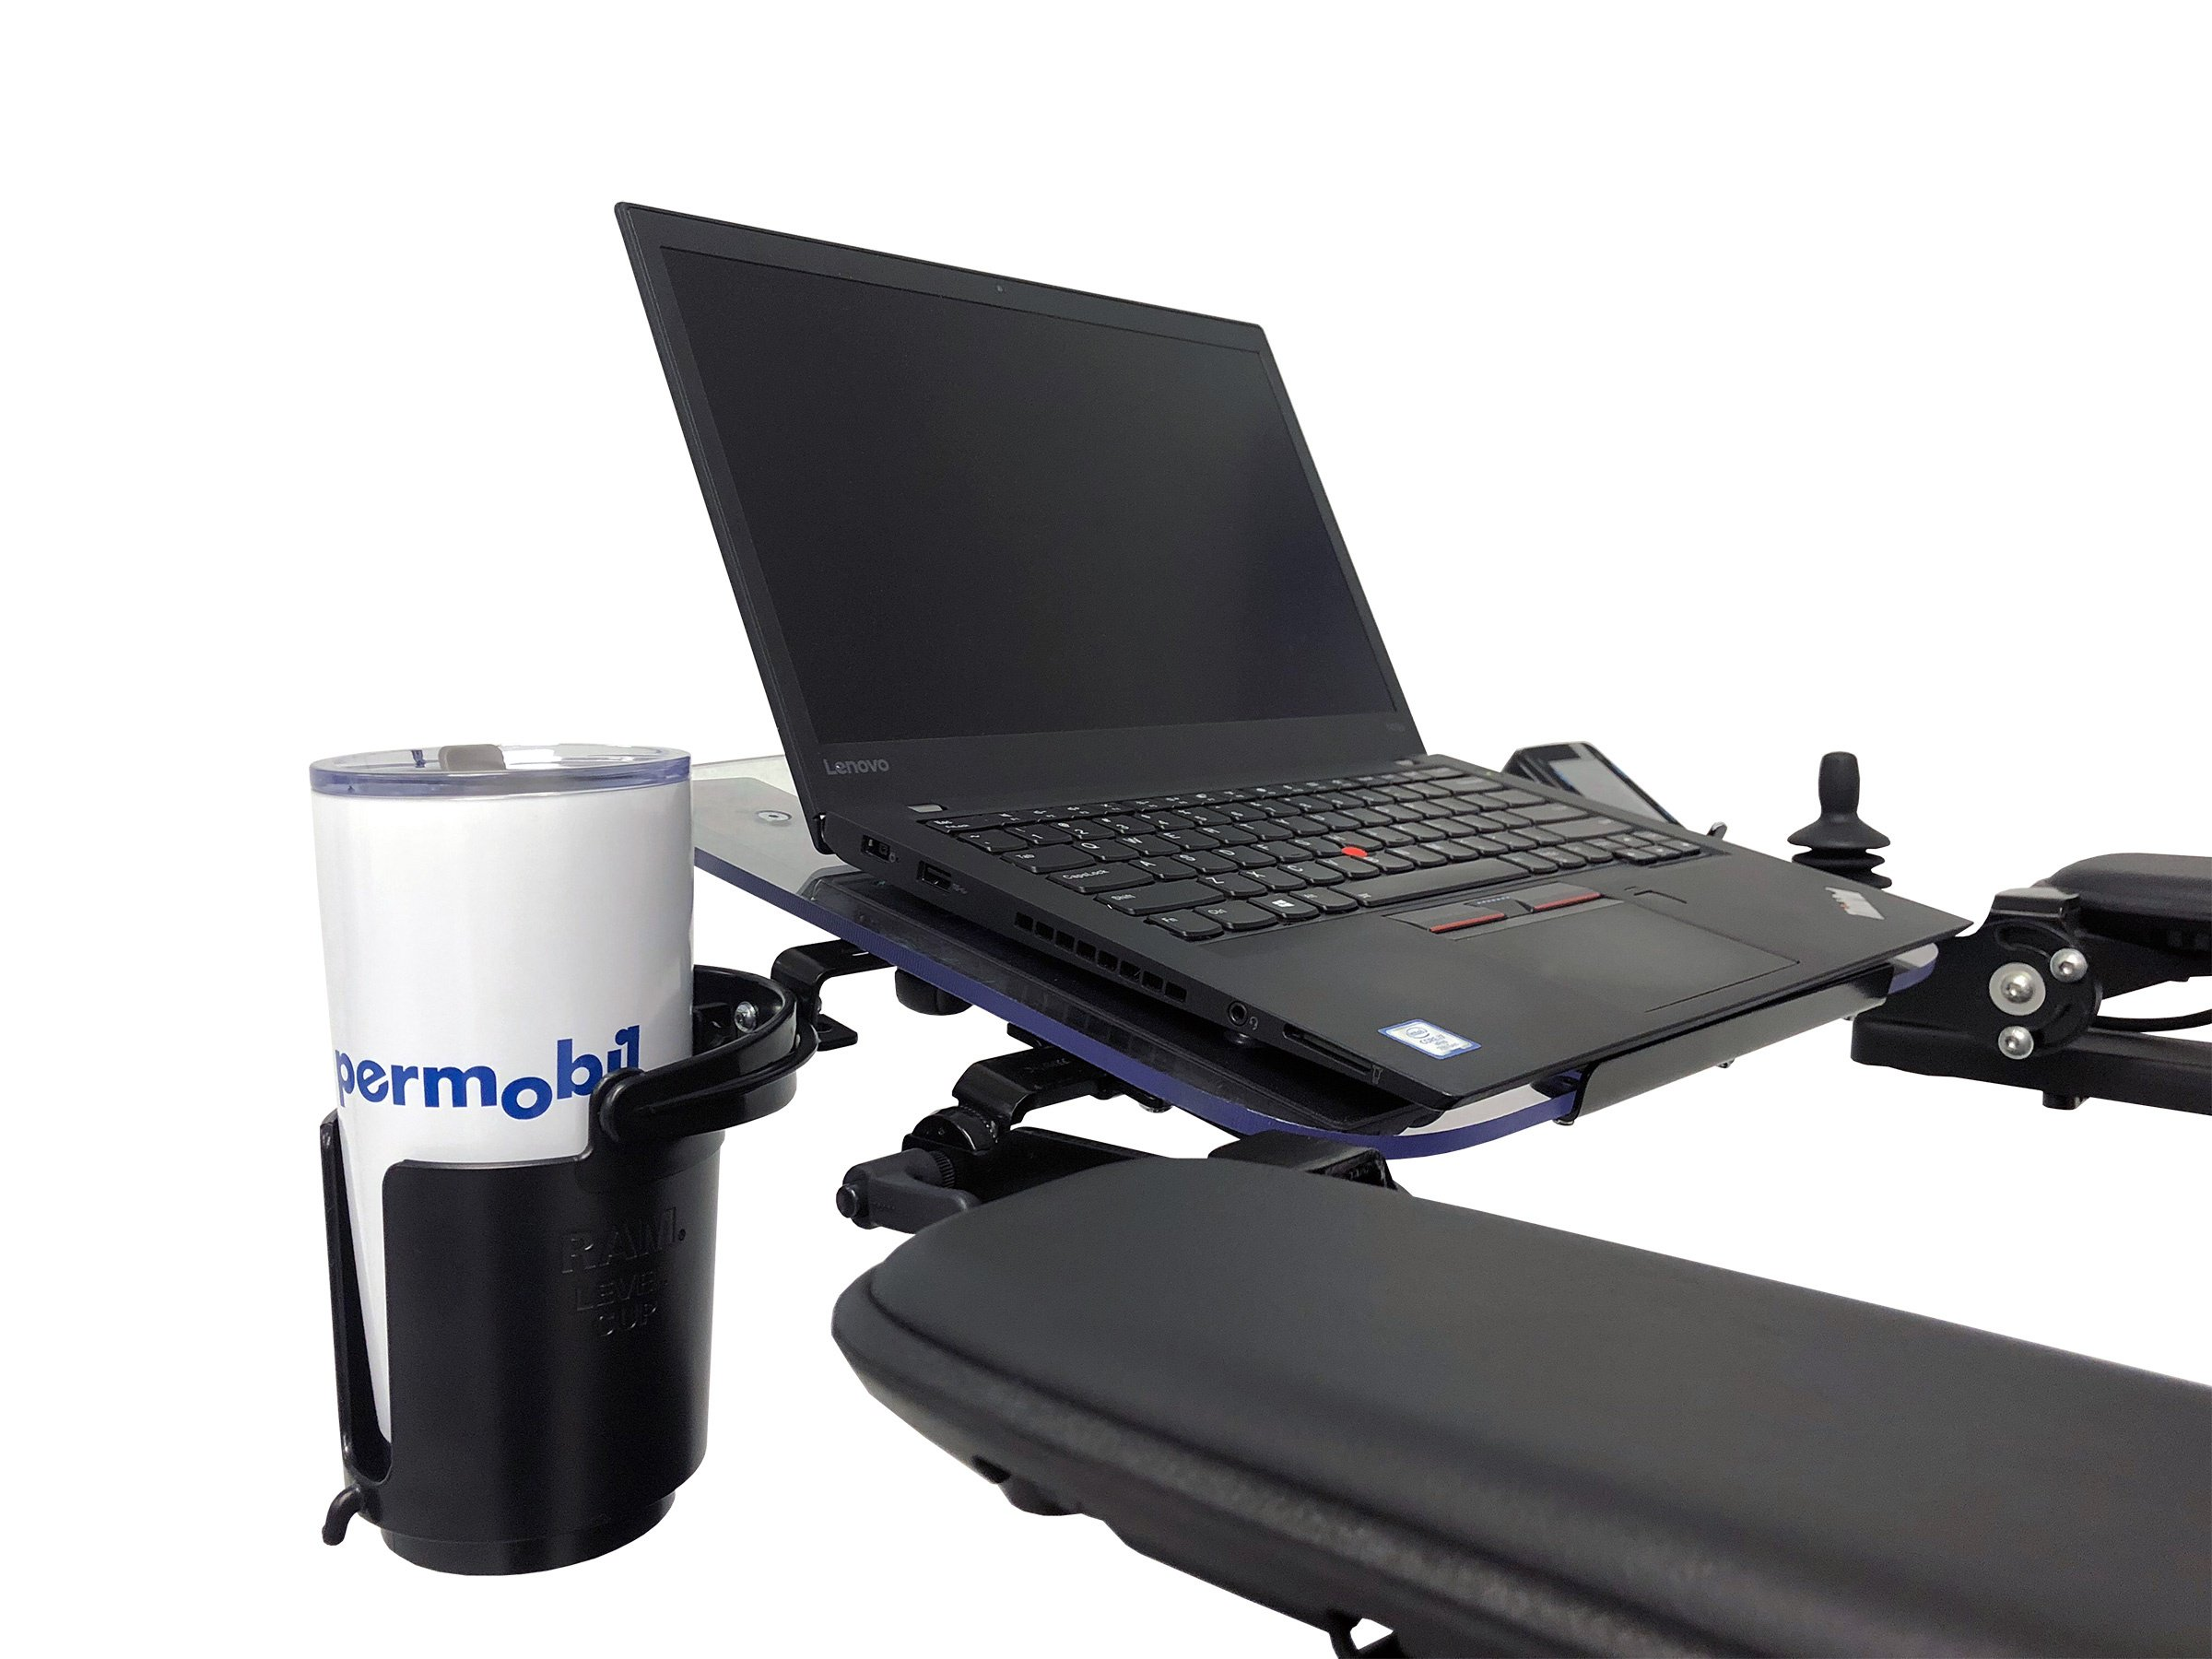 Permobil Tray Laptop Clean and Tumbler Holder